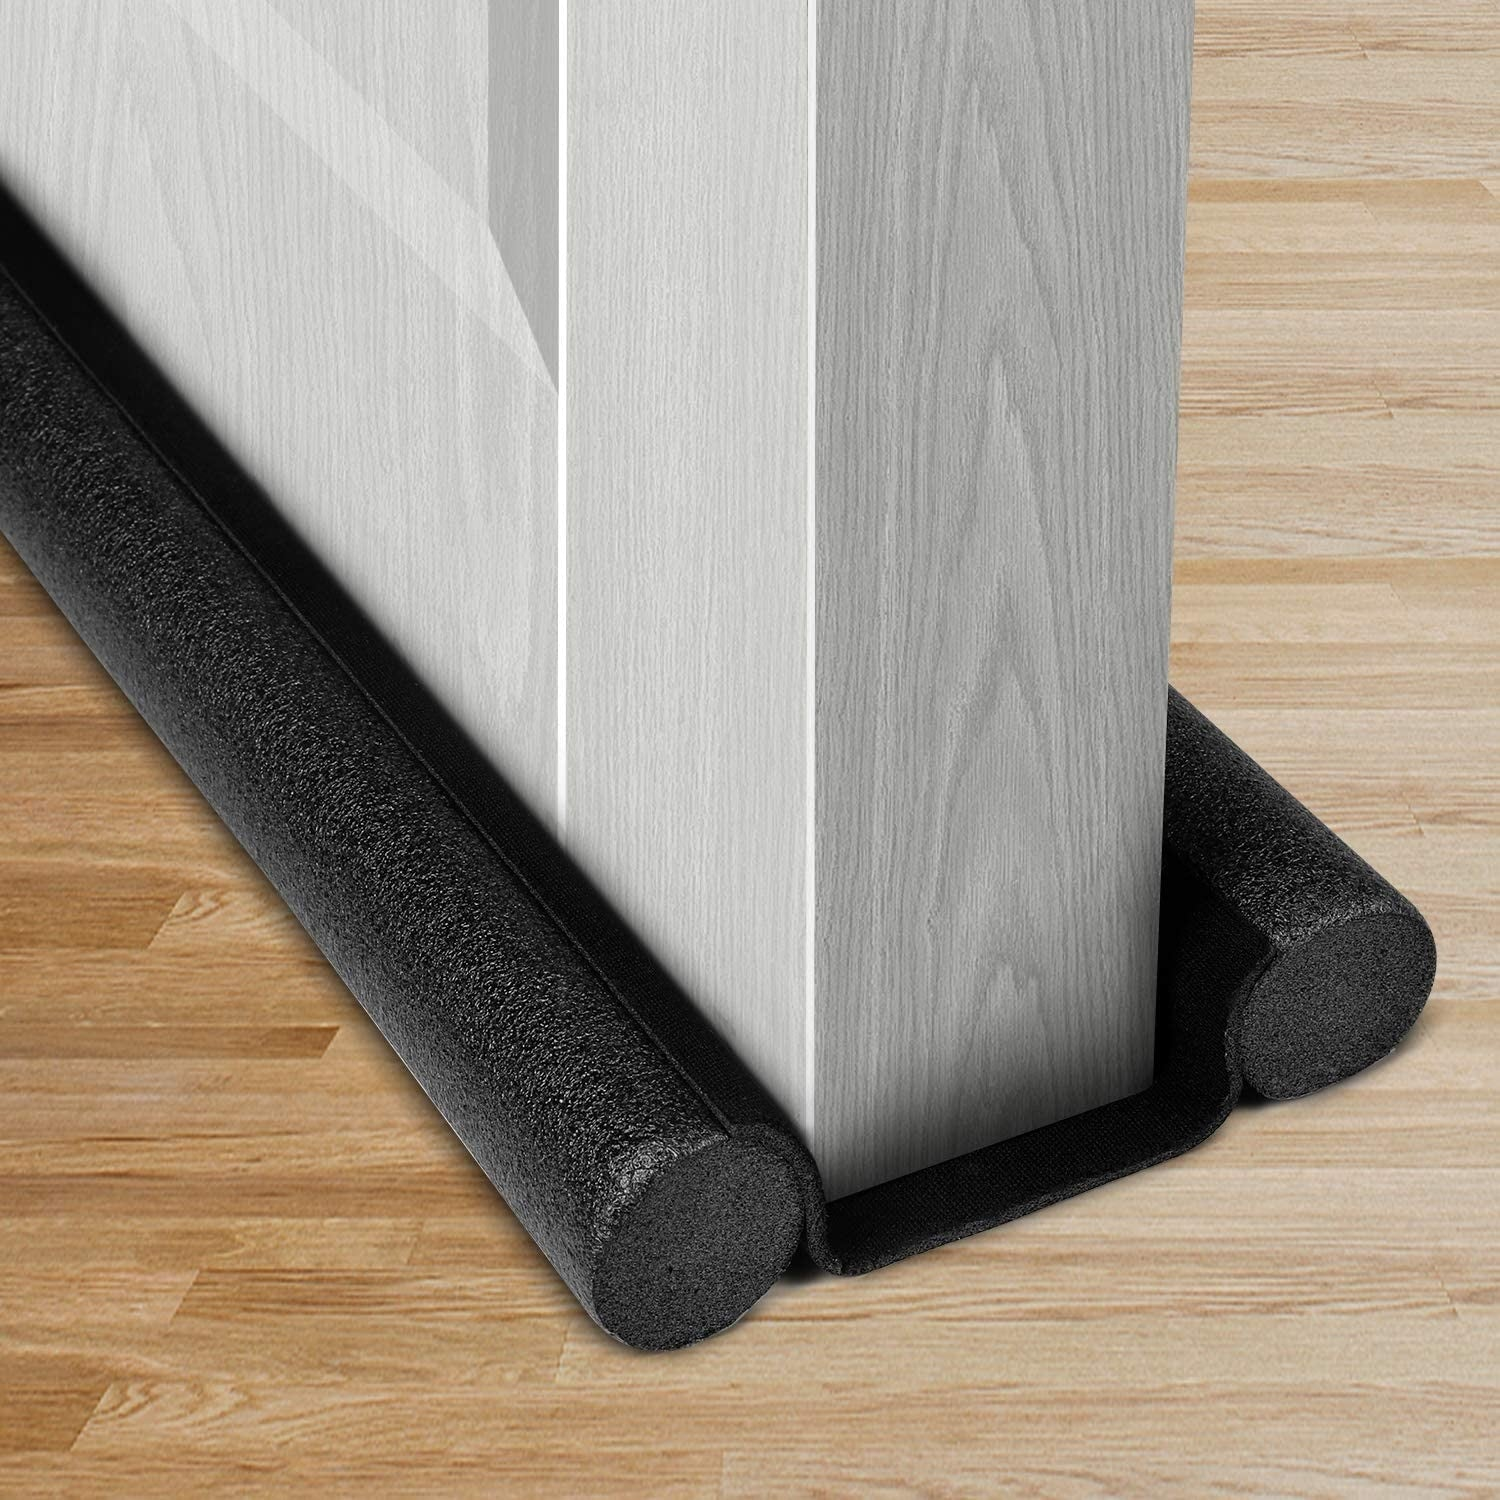 Door Bottom Stopper Sealing Strip